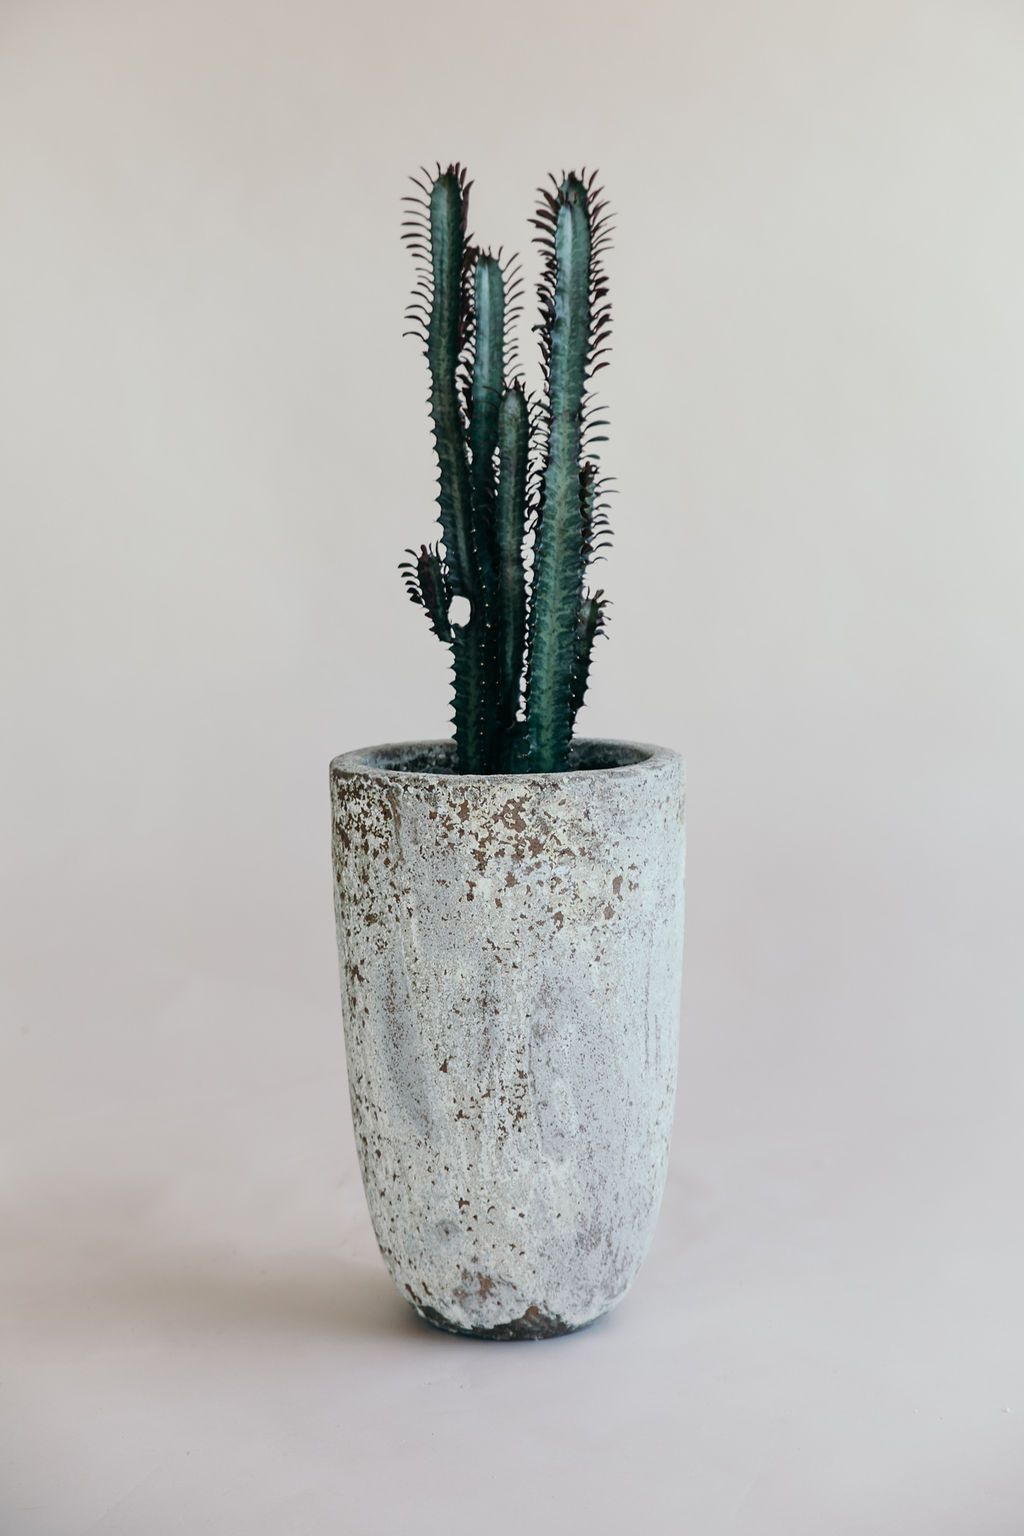 Small Atlantis U Planter in grey colour with planted cacti from THe Green Room